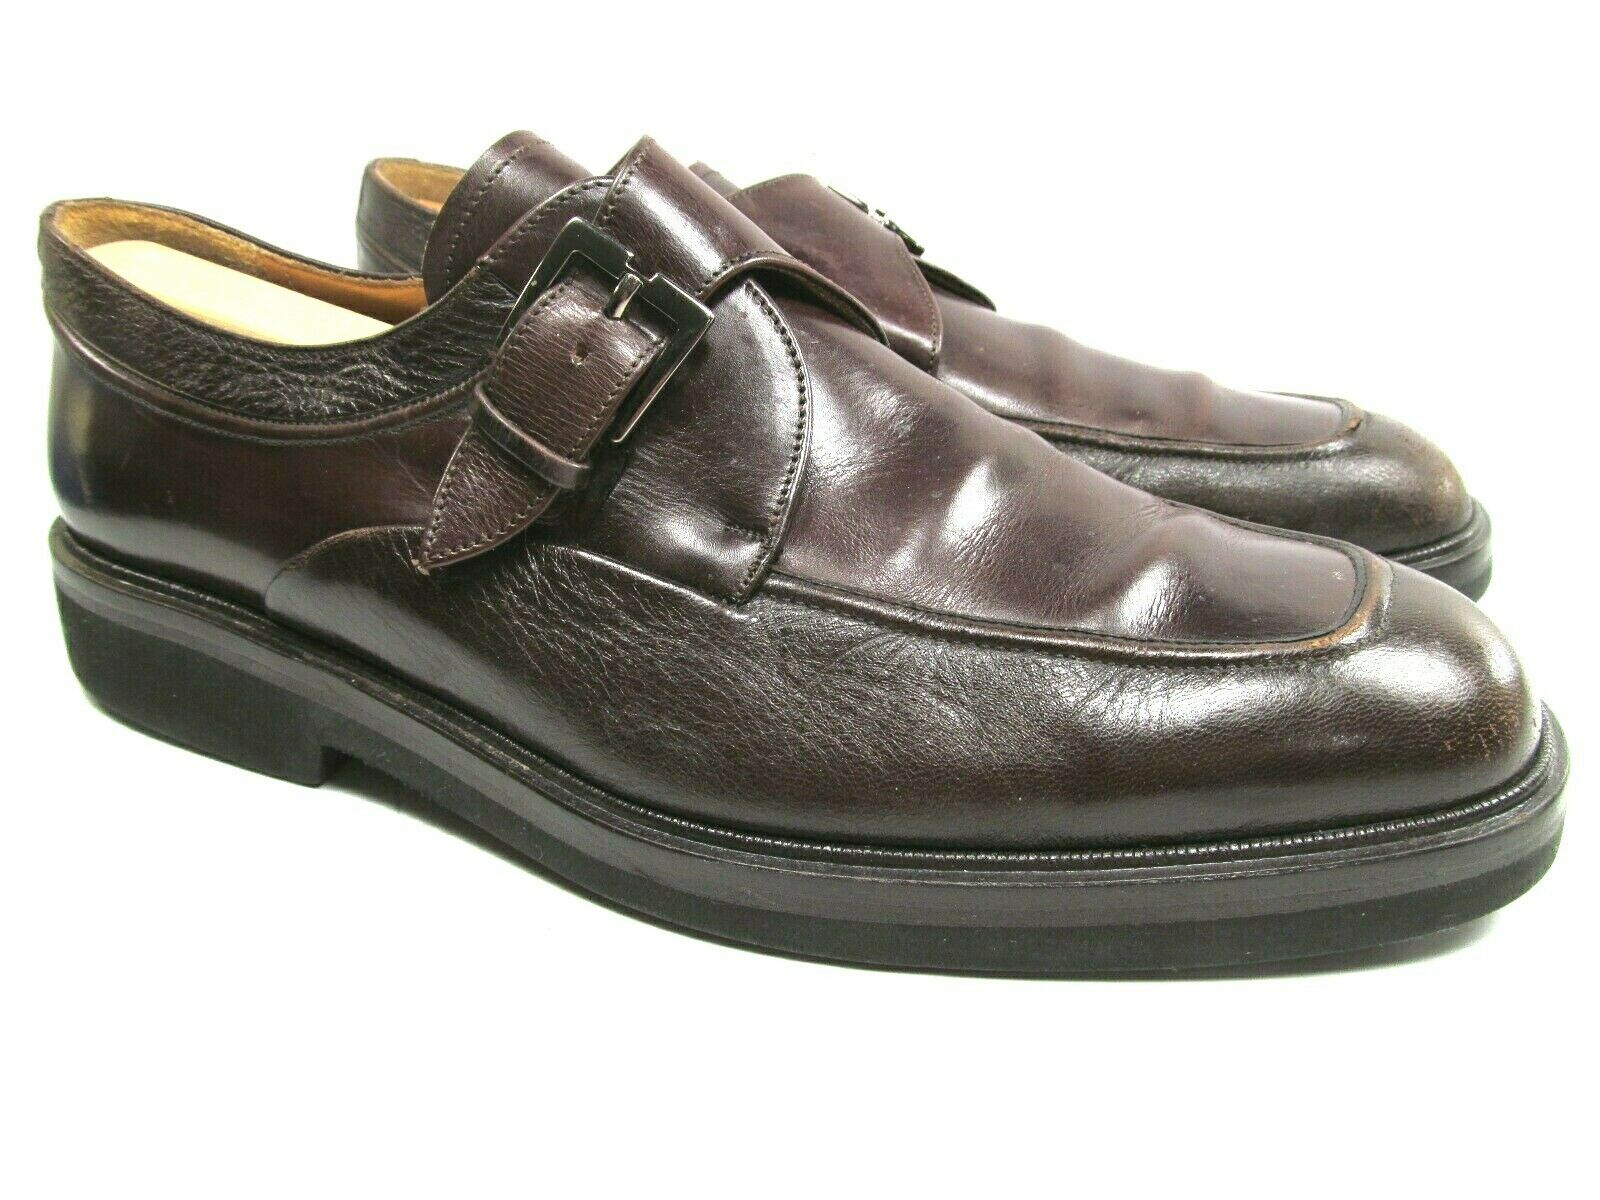 Paolo De Marco Mens Brown Monk Strap Apron Toe  With Buckle Size US 10